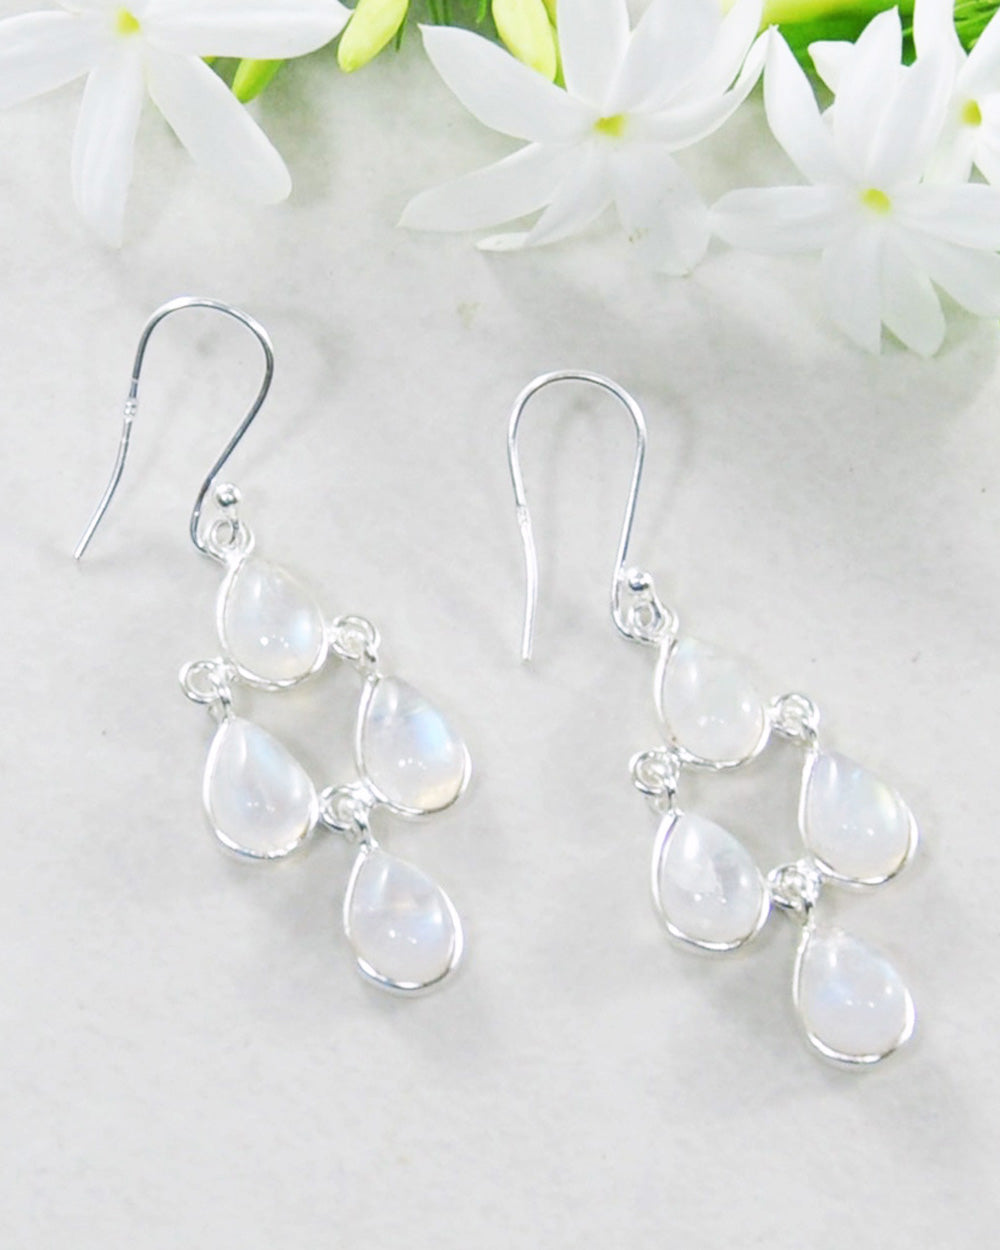 Earthly Elements Moonstone Chandelier Earrings in Sterling Silver